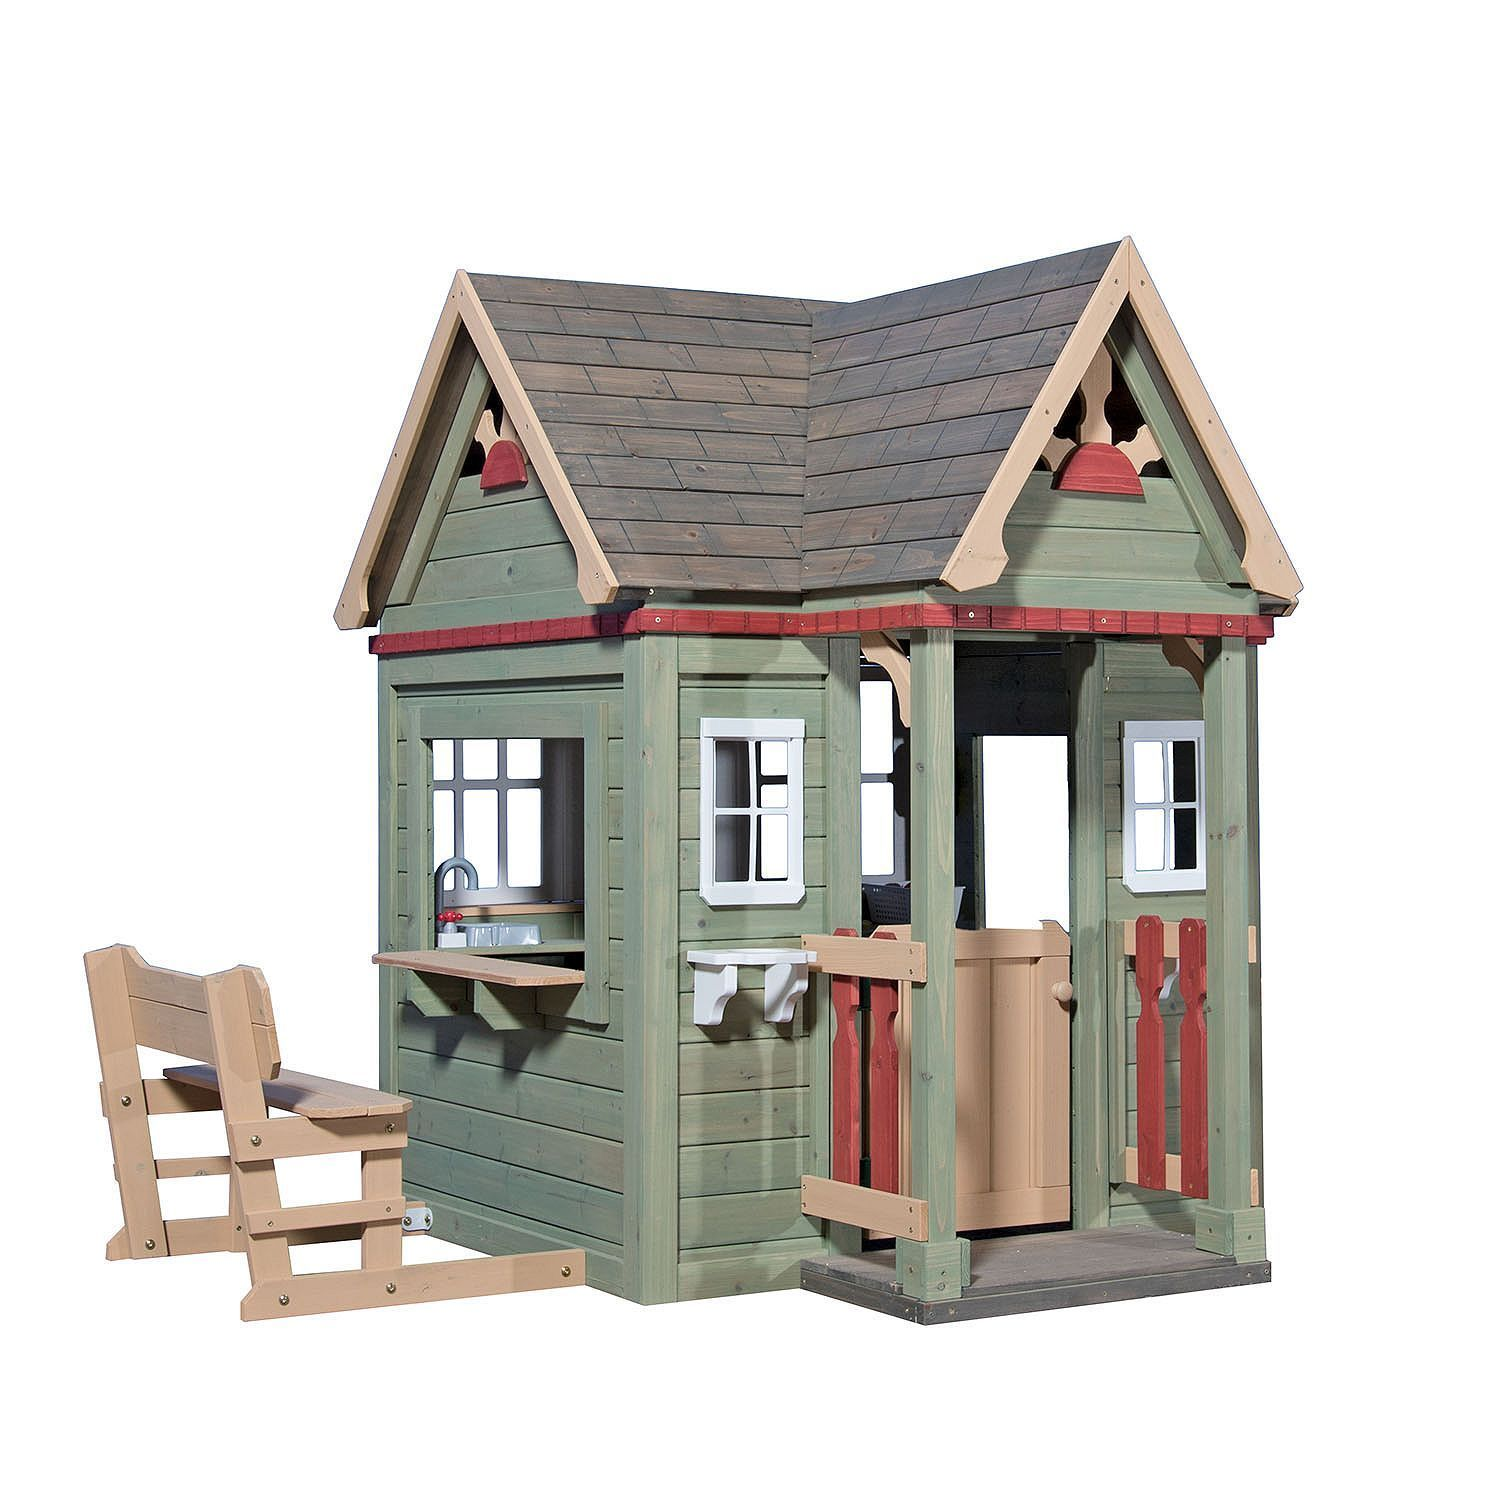 Top 20 Outdoor Playhouses for Kids, Plus their Costs Playhouse X With Loft Plans on barn style sheds with loft, yard sheds with loft, 16x20 cabin plan with loft, 14x16 cabin with a loft, one room cabin with loft, 12x12 cabin with sleeping loft,